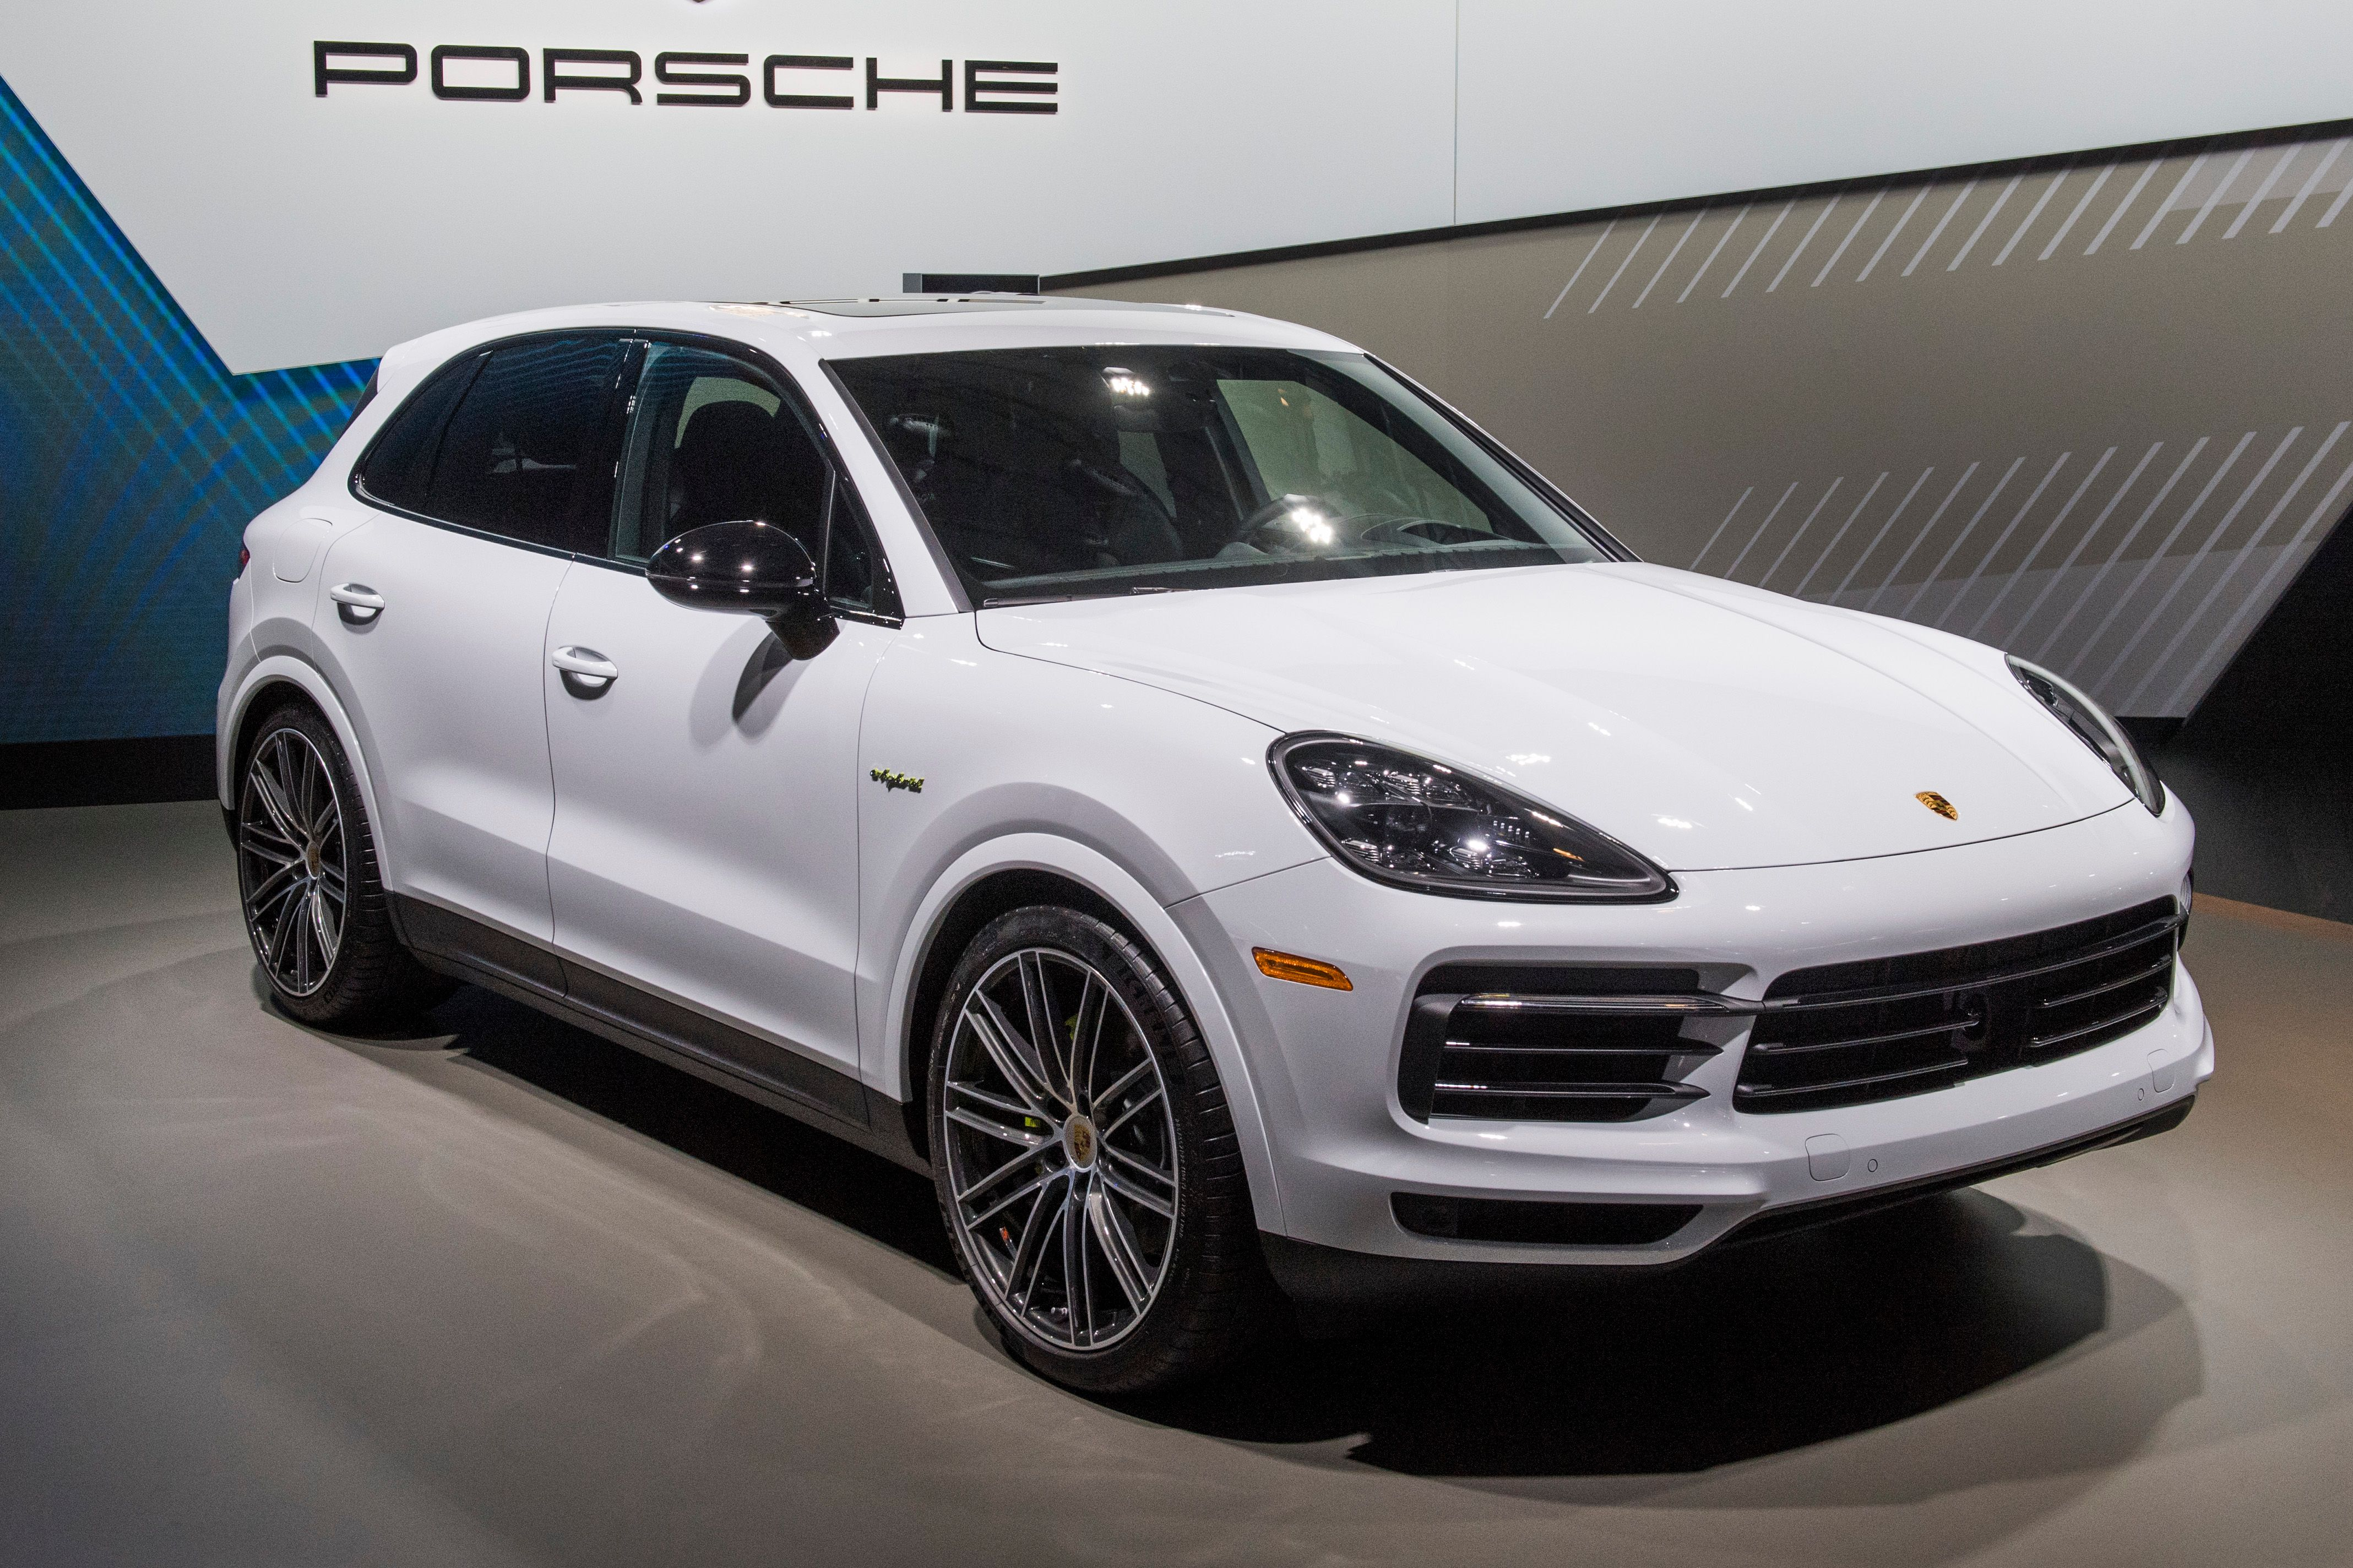 Used Porsche Cayennes Are A Bargain You Should Avoid